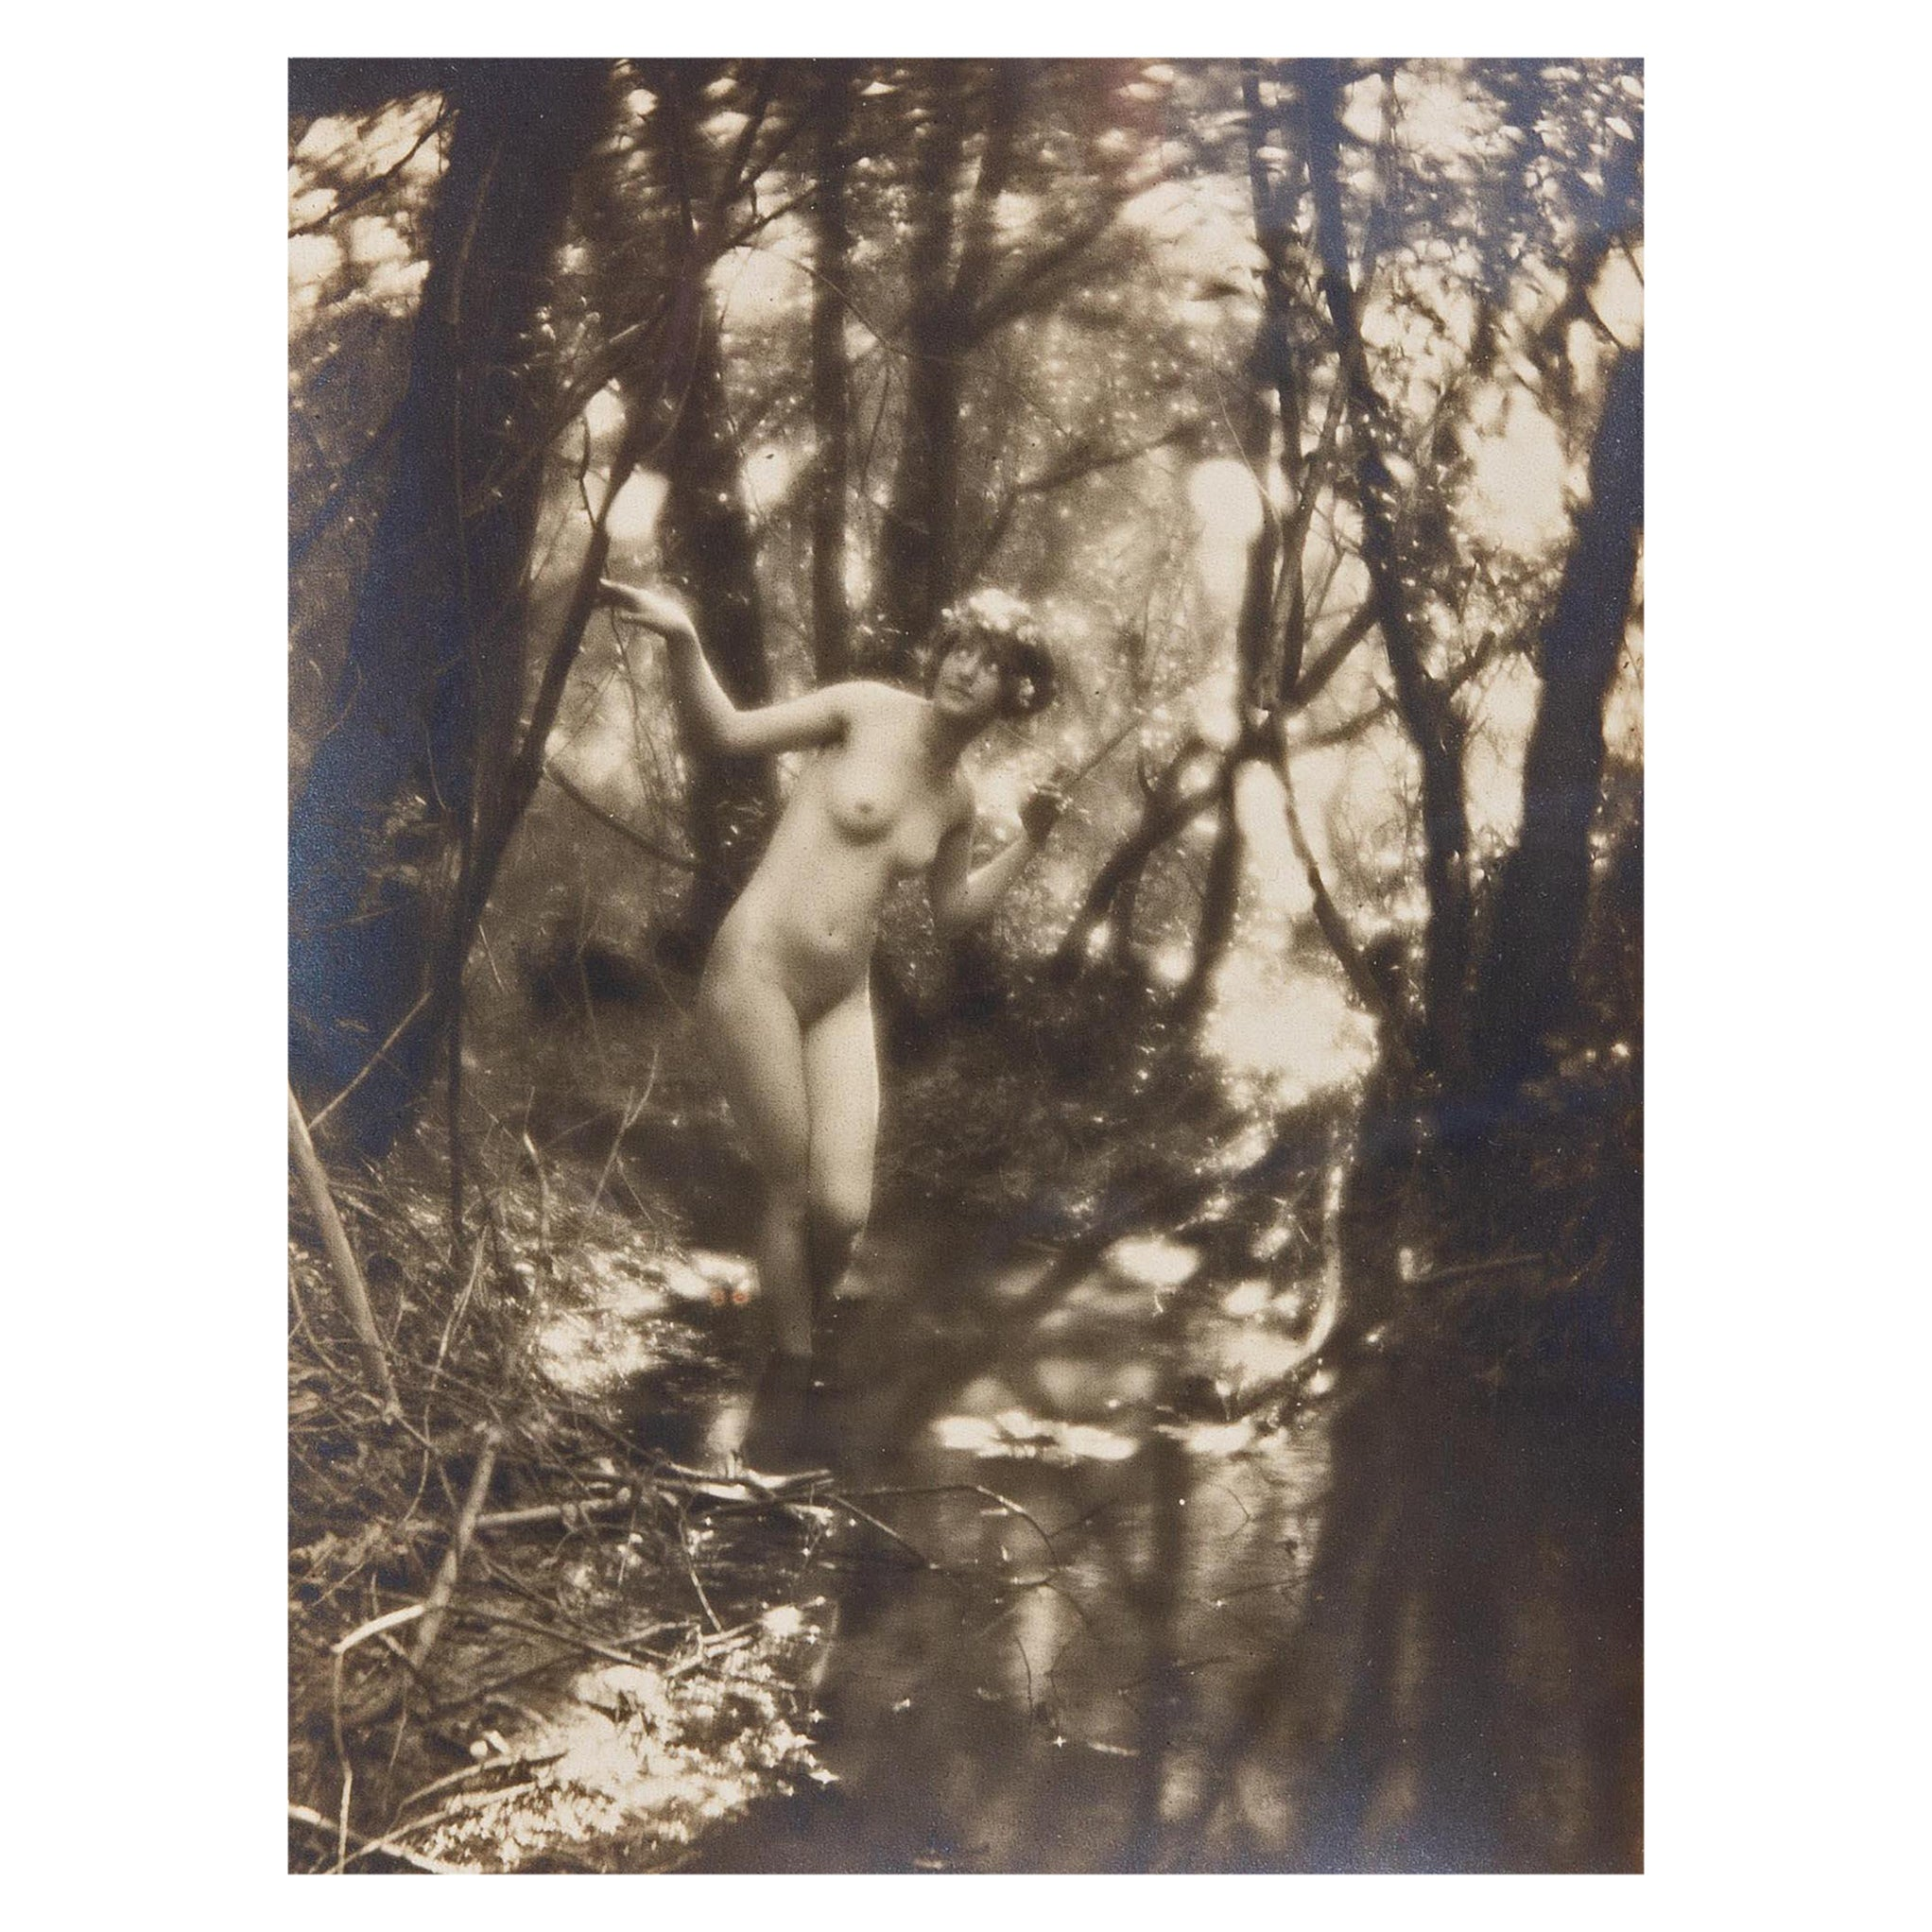 Pictorialist Photograph Nude Wood Nymph by Charles Cook Circa 1910